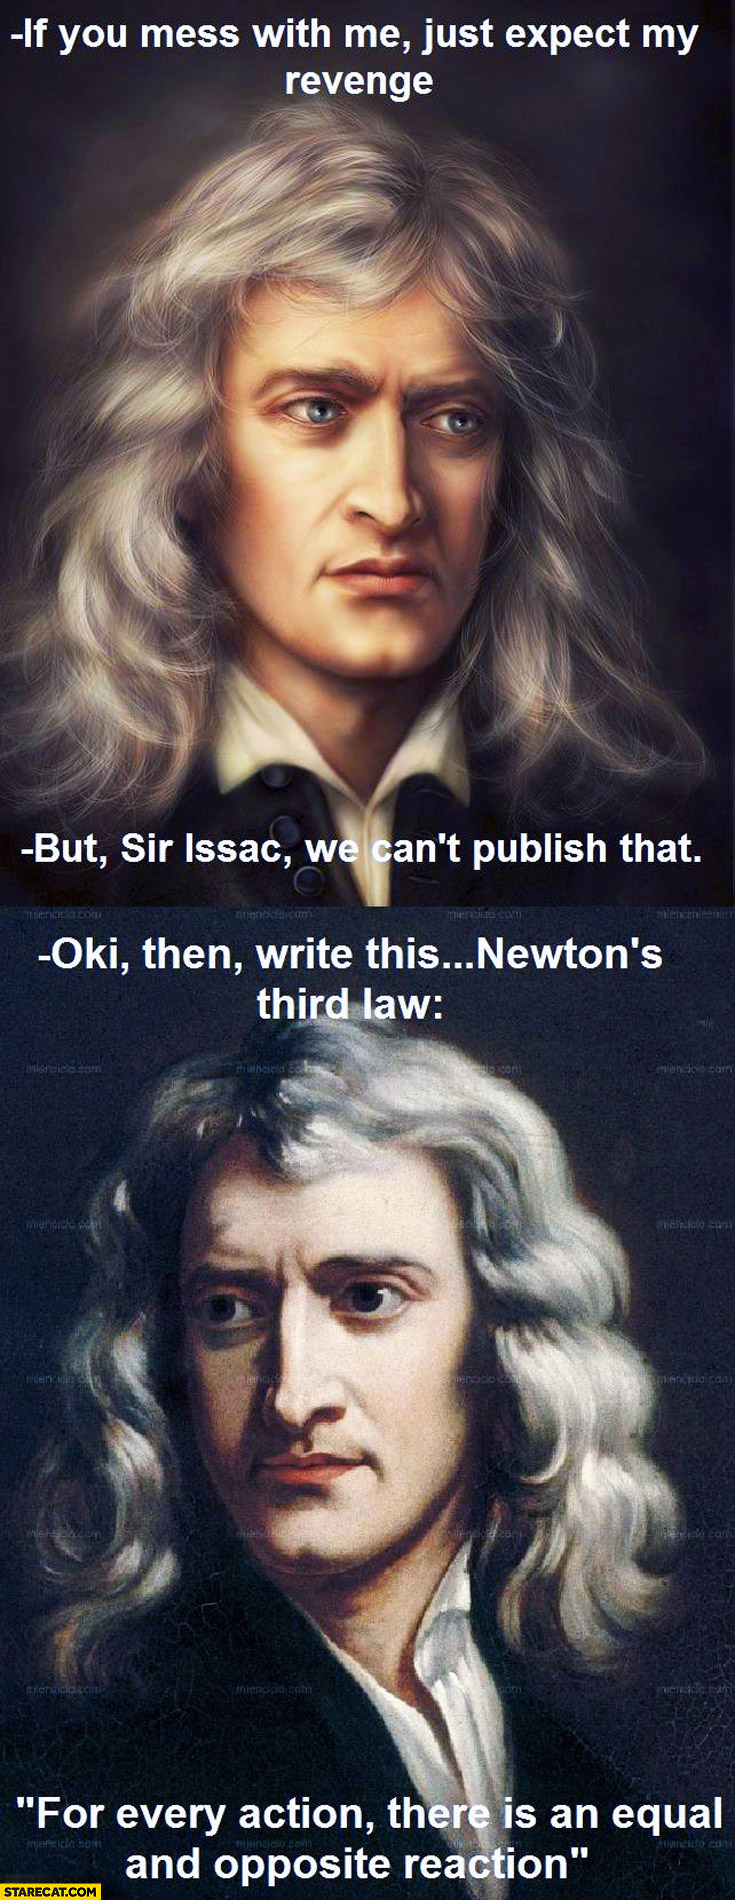 If you mess with me expect my revenge Sir Issac Newton we can't publish that OK then write Newton's third law for every action there is an equal and opposite reaction